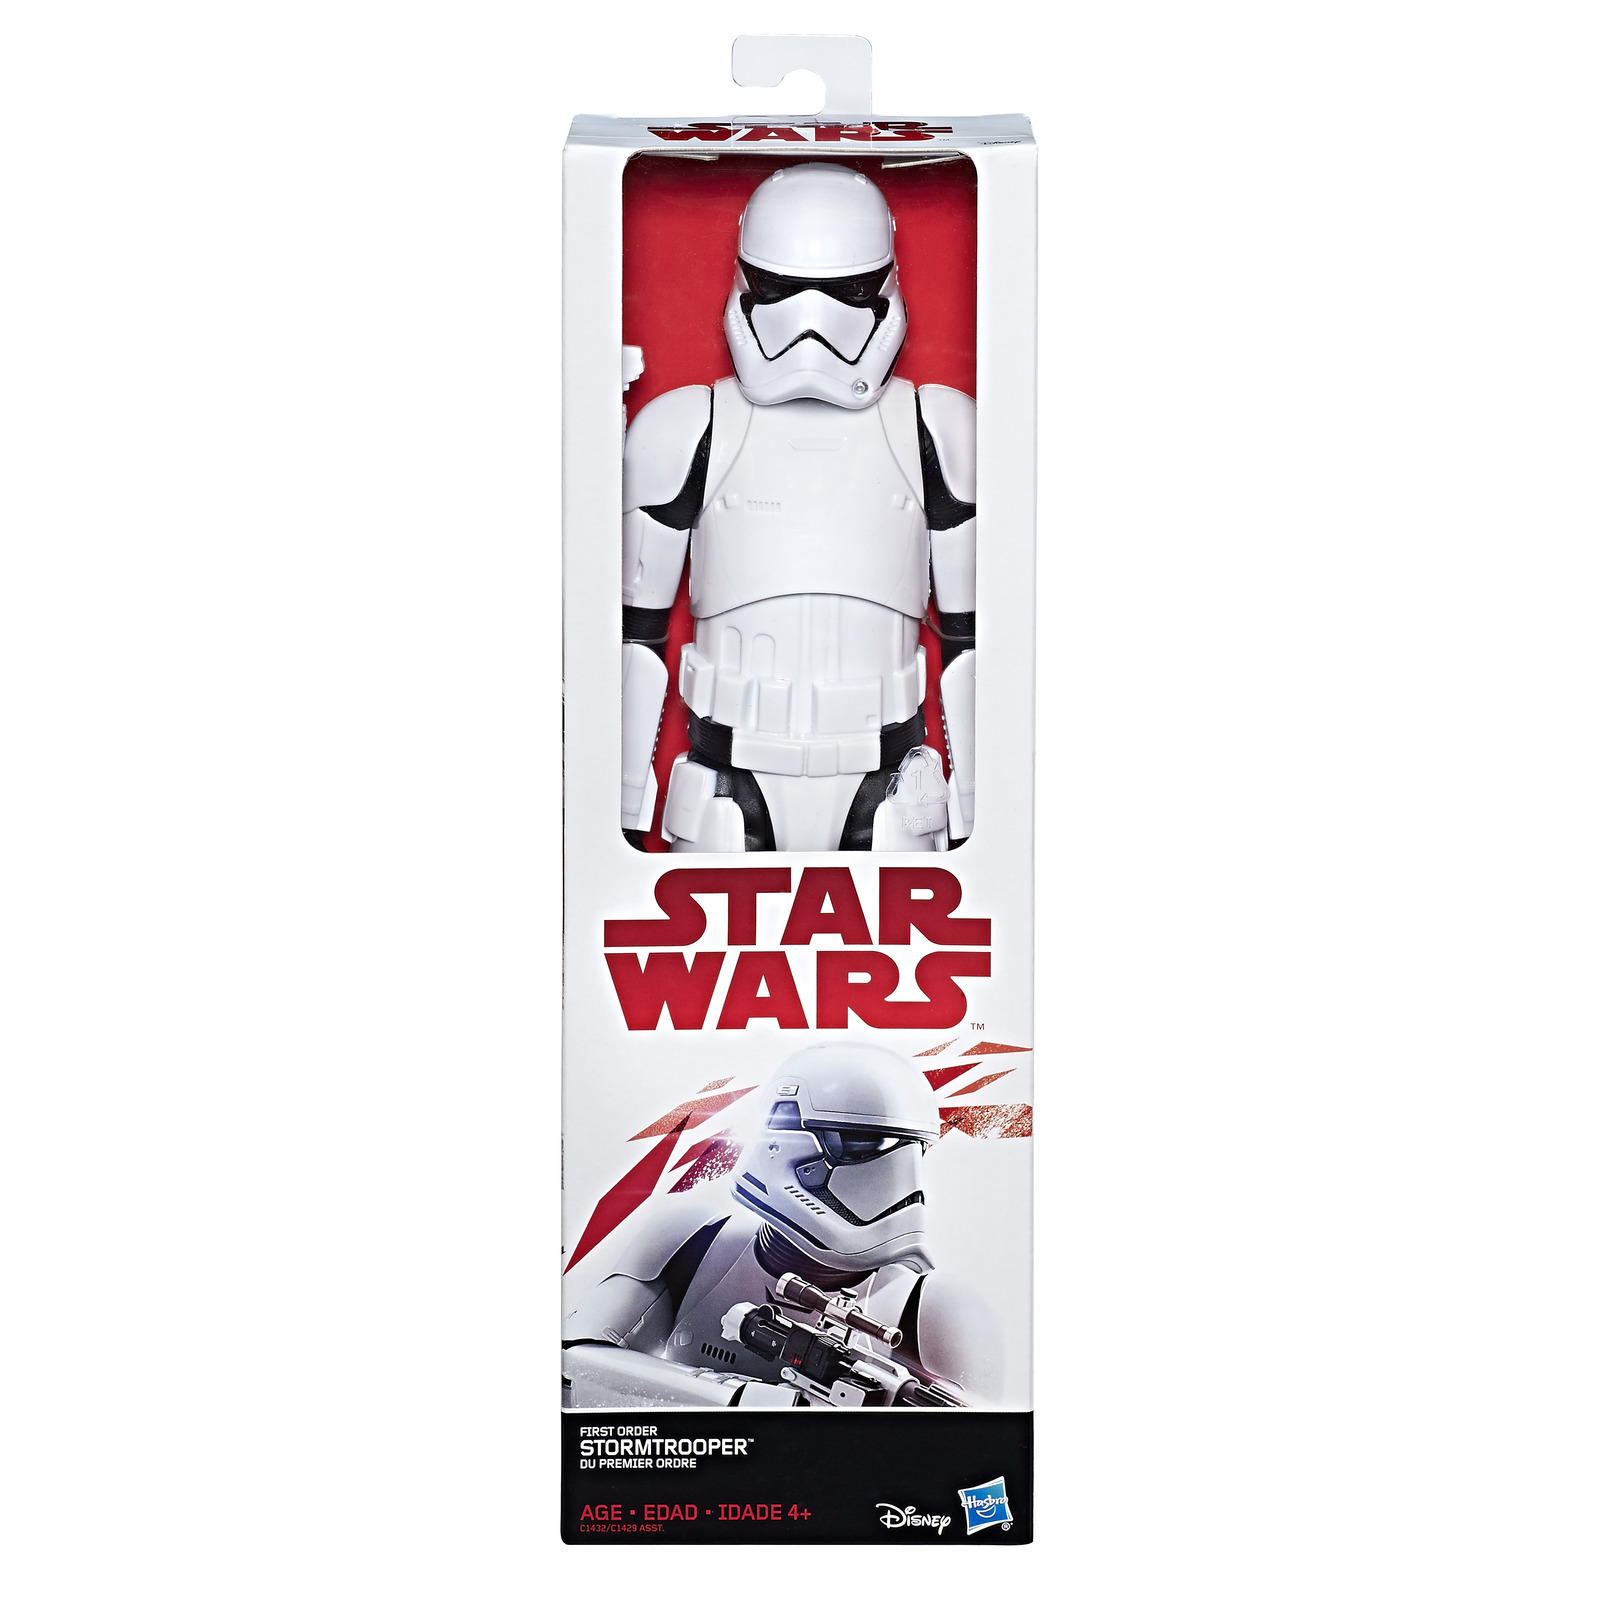 "Star Wars: The Last Jedi 12"" Figure - Stormtrooper image"